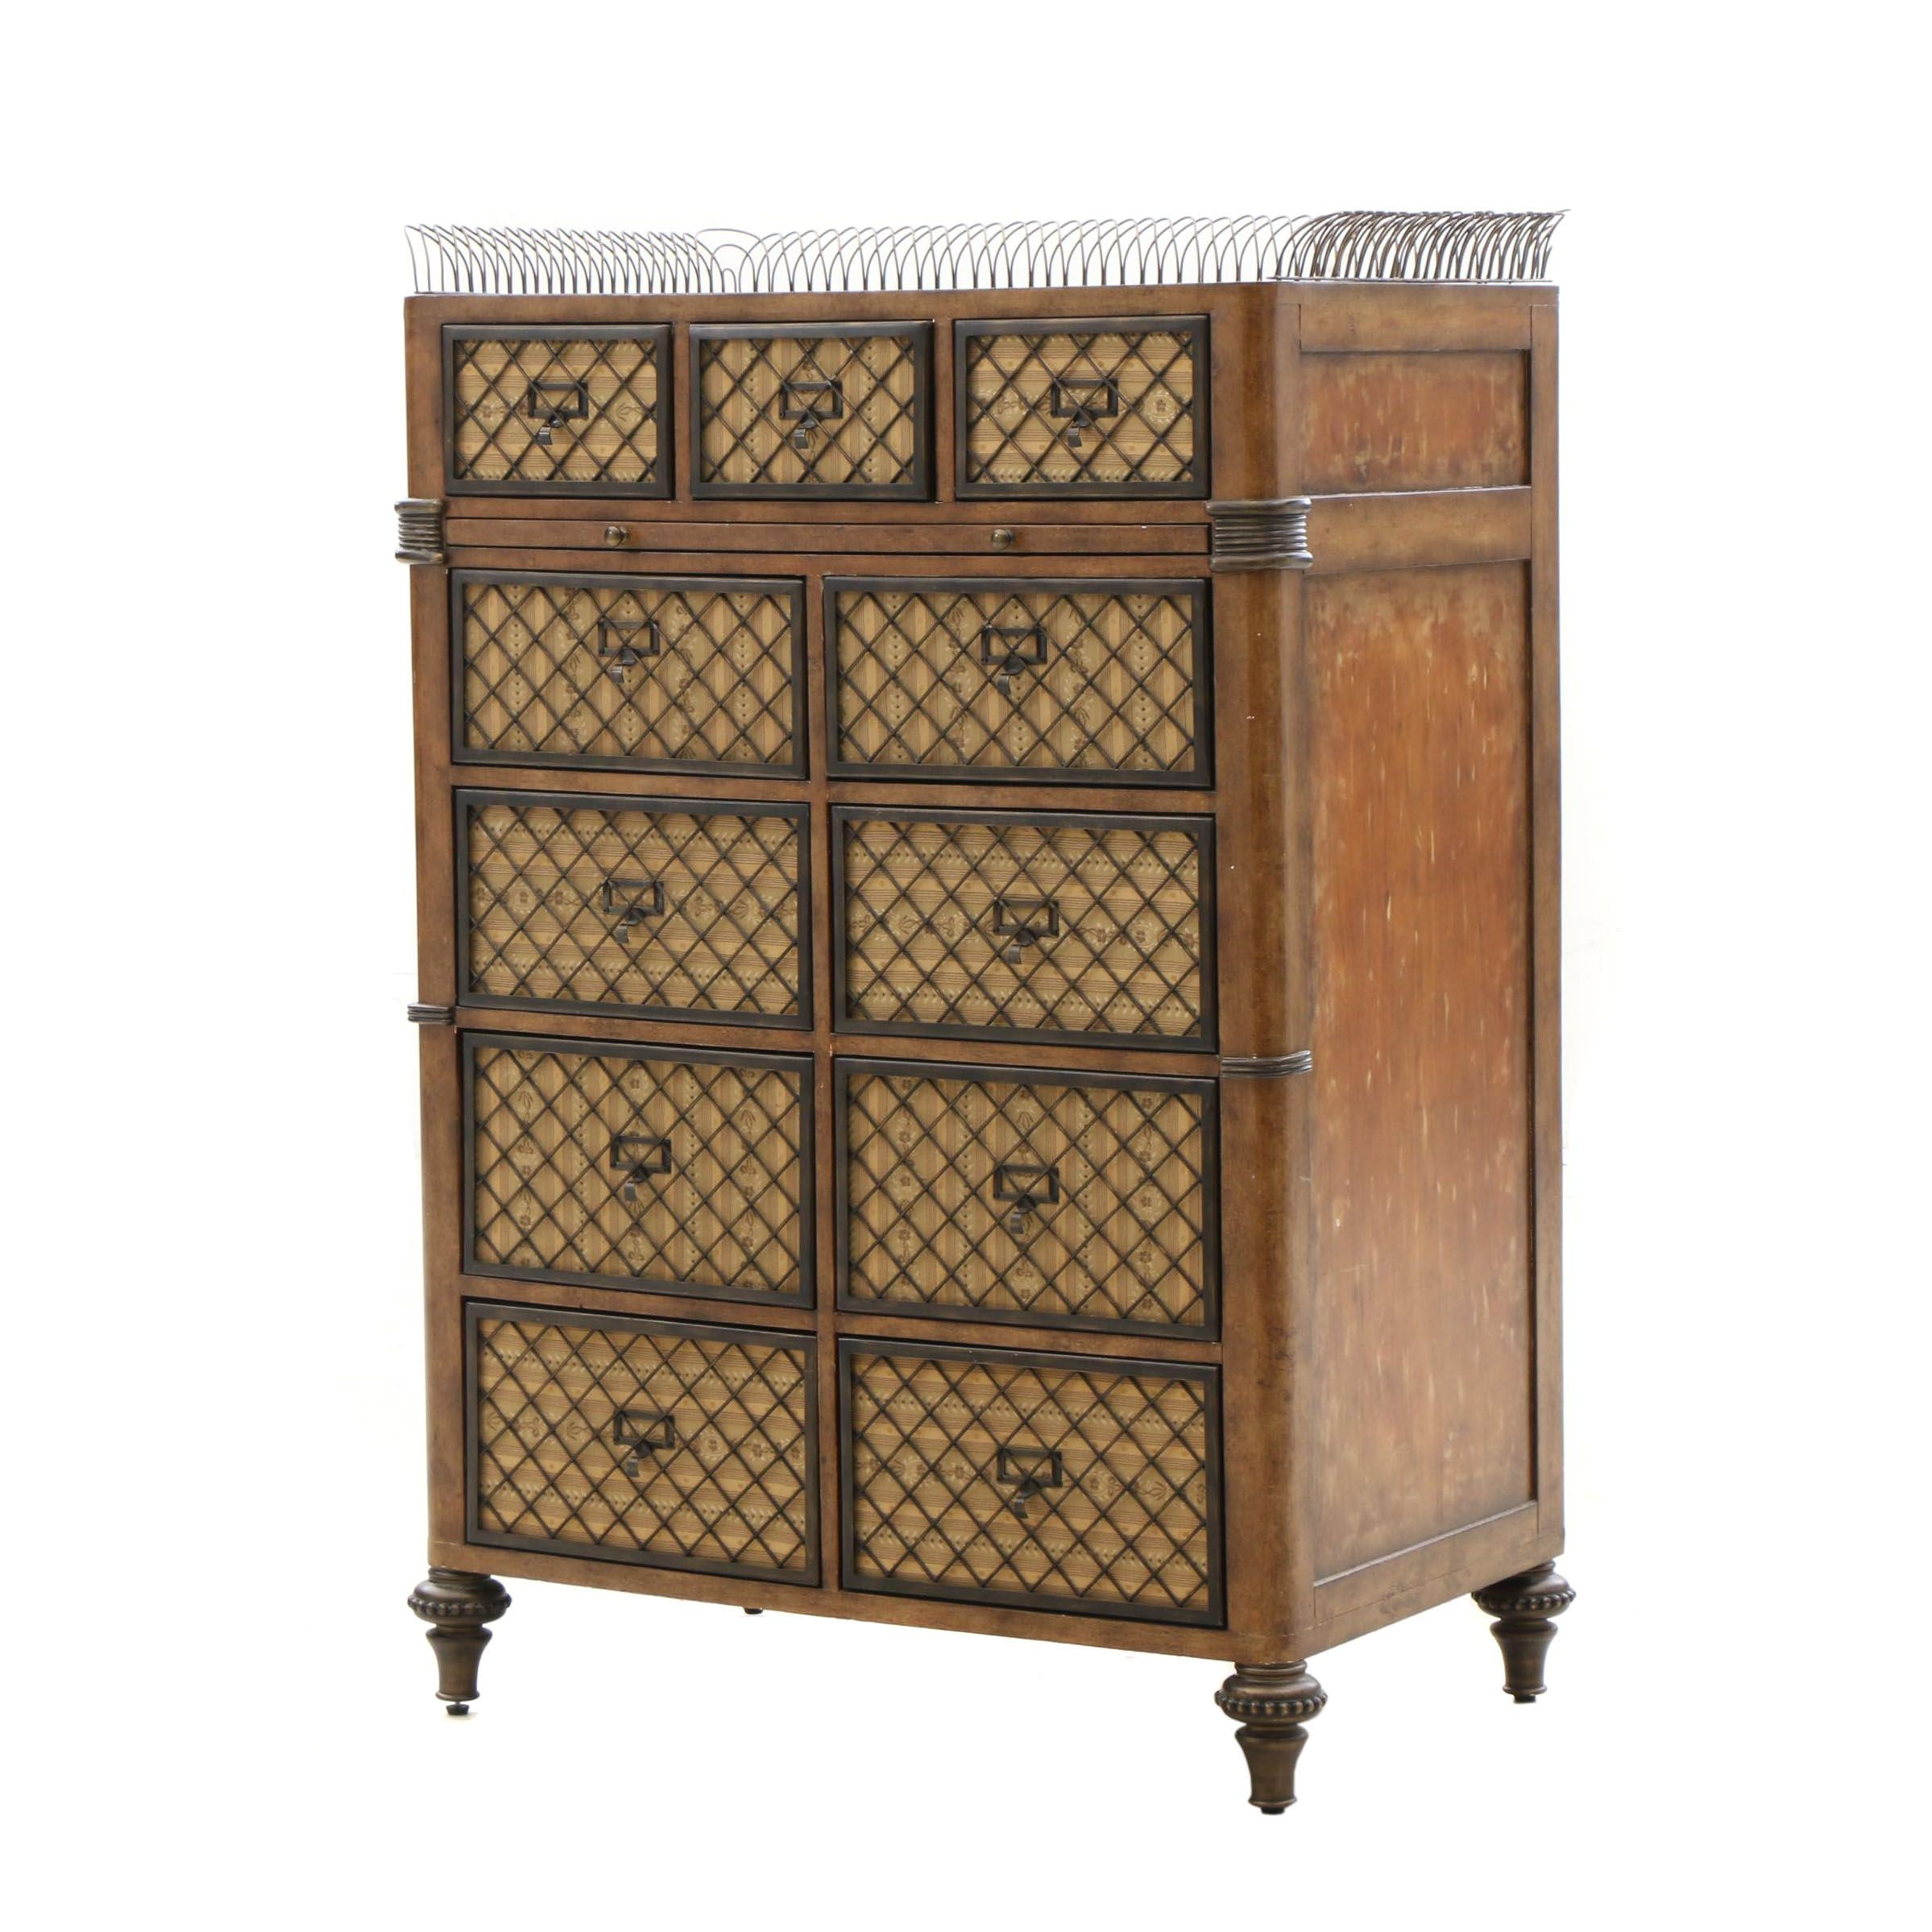 Regency Style Chest of Drawers